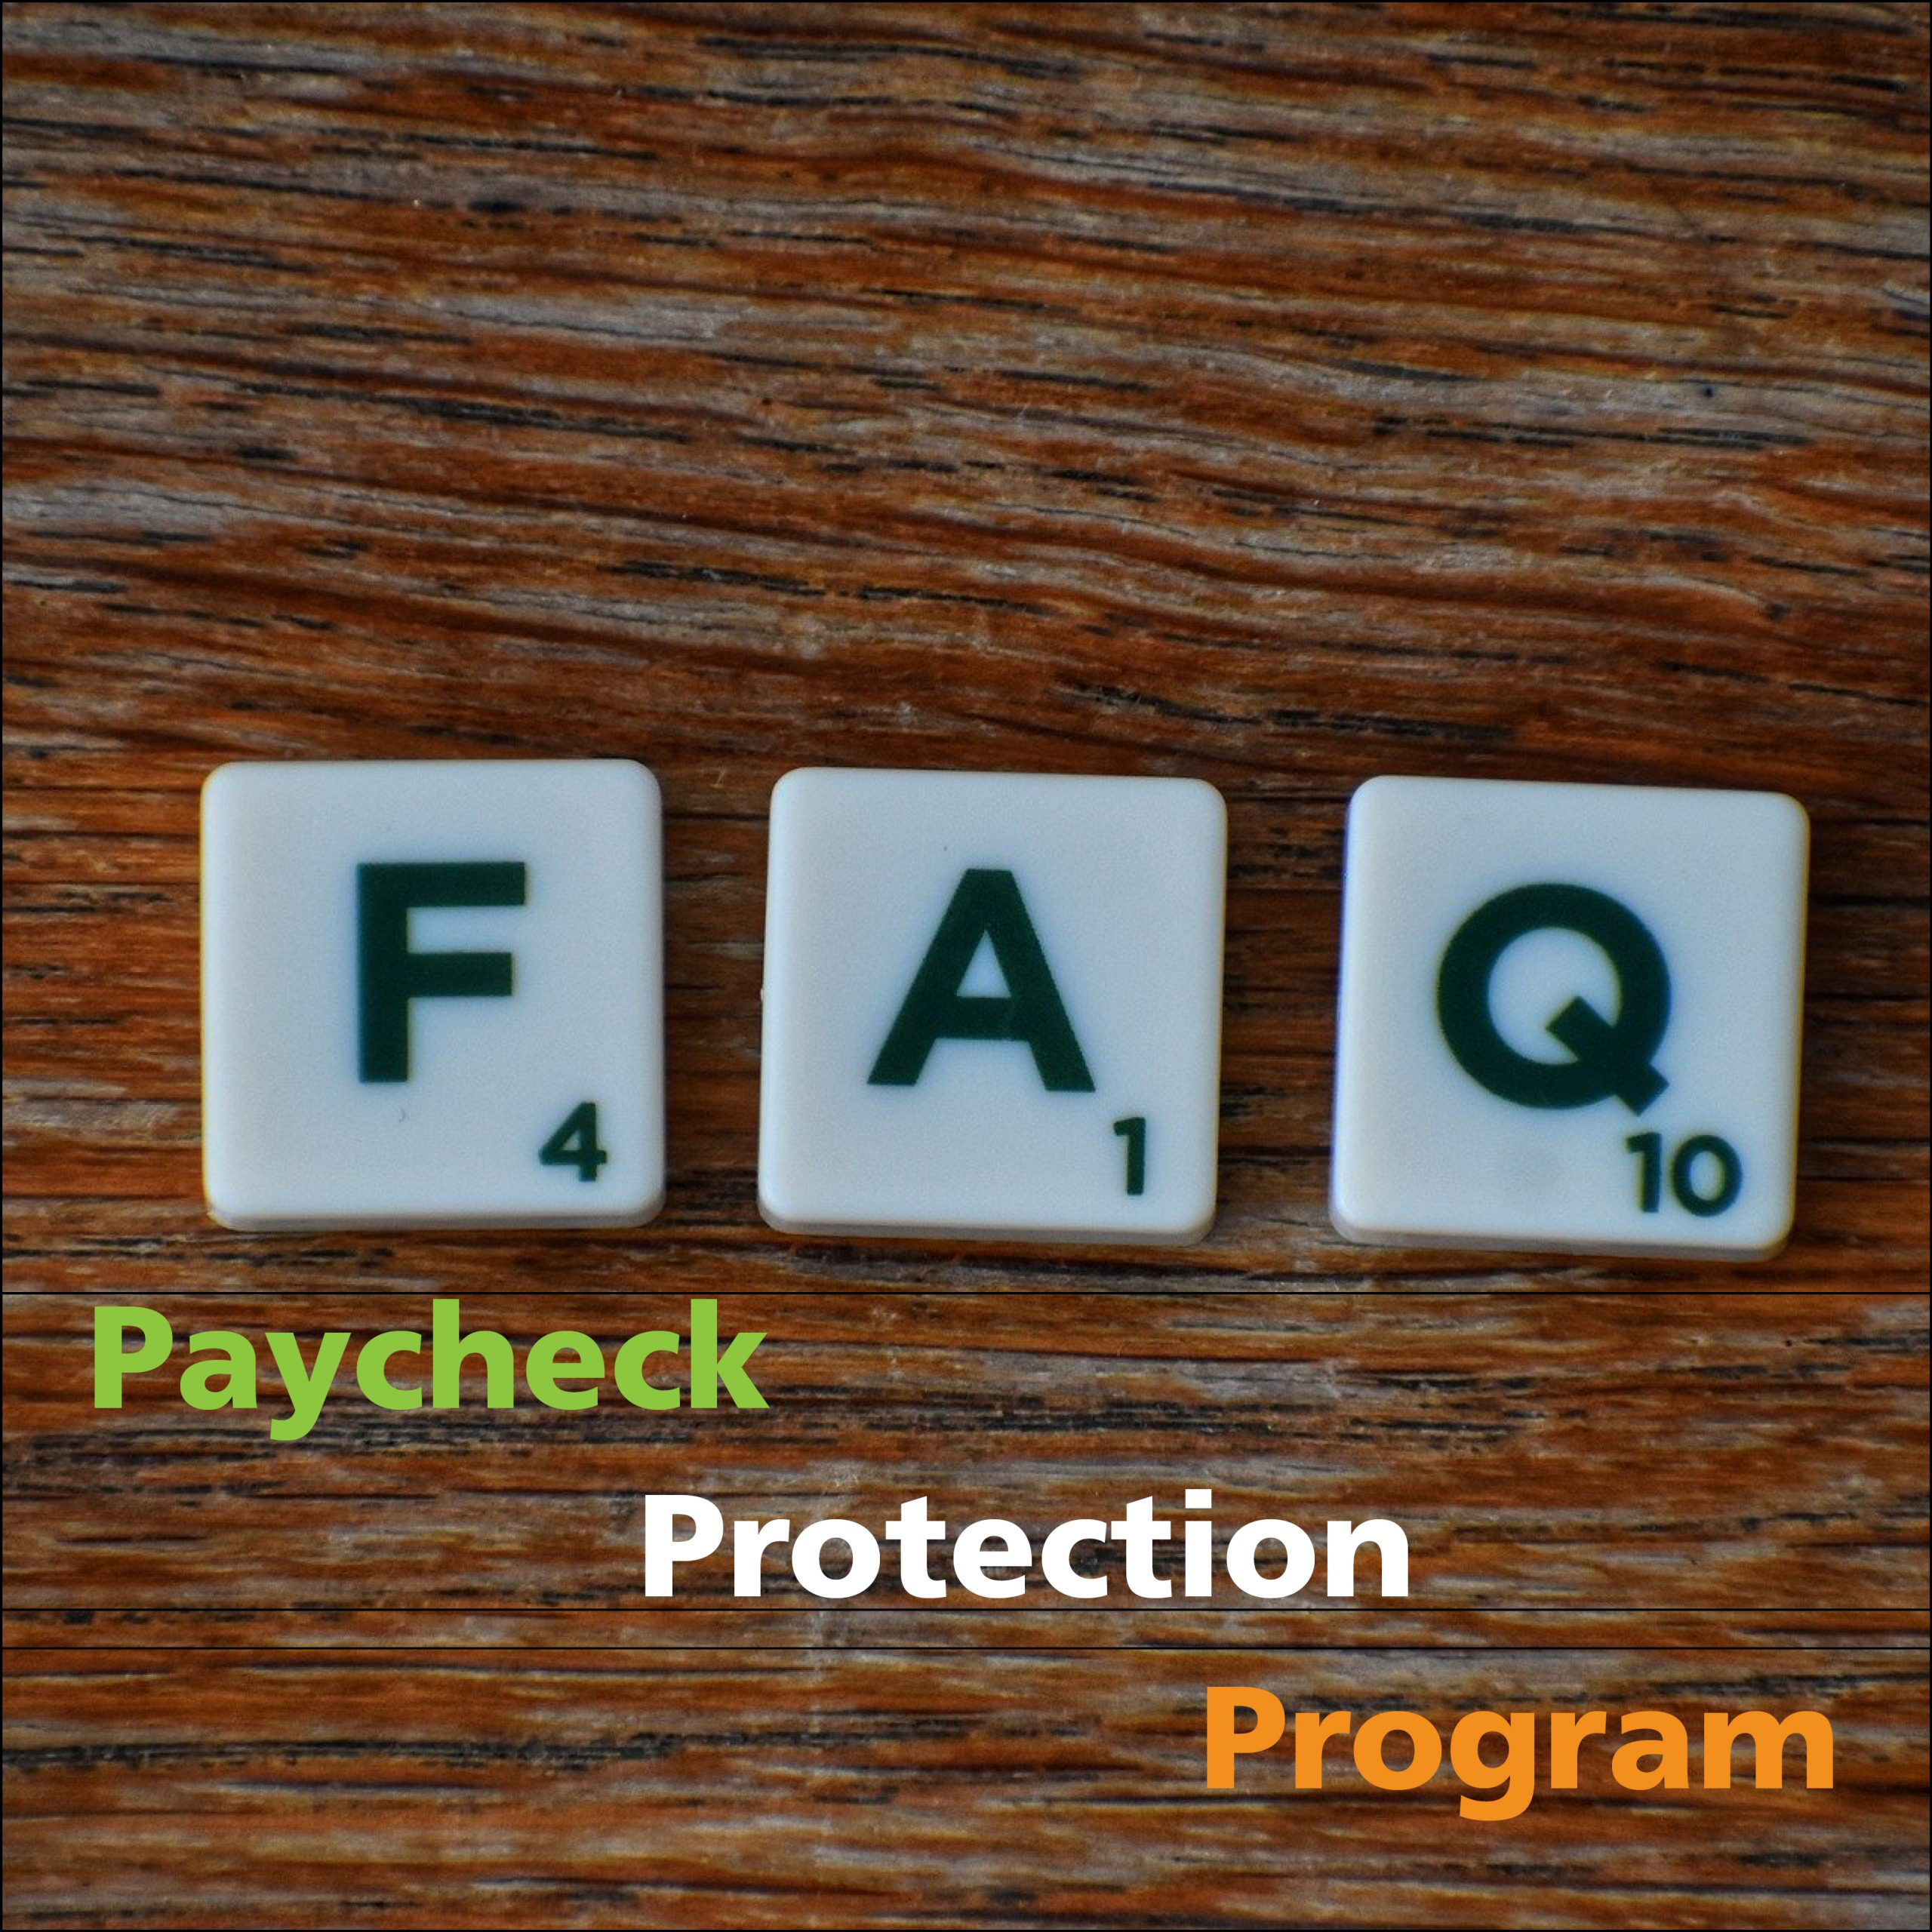 Treasury Issues New FAQ for the Paycheck Protection Program